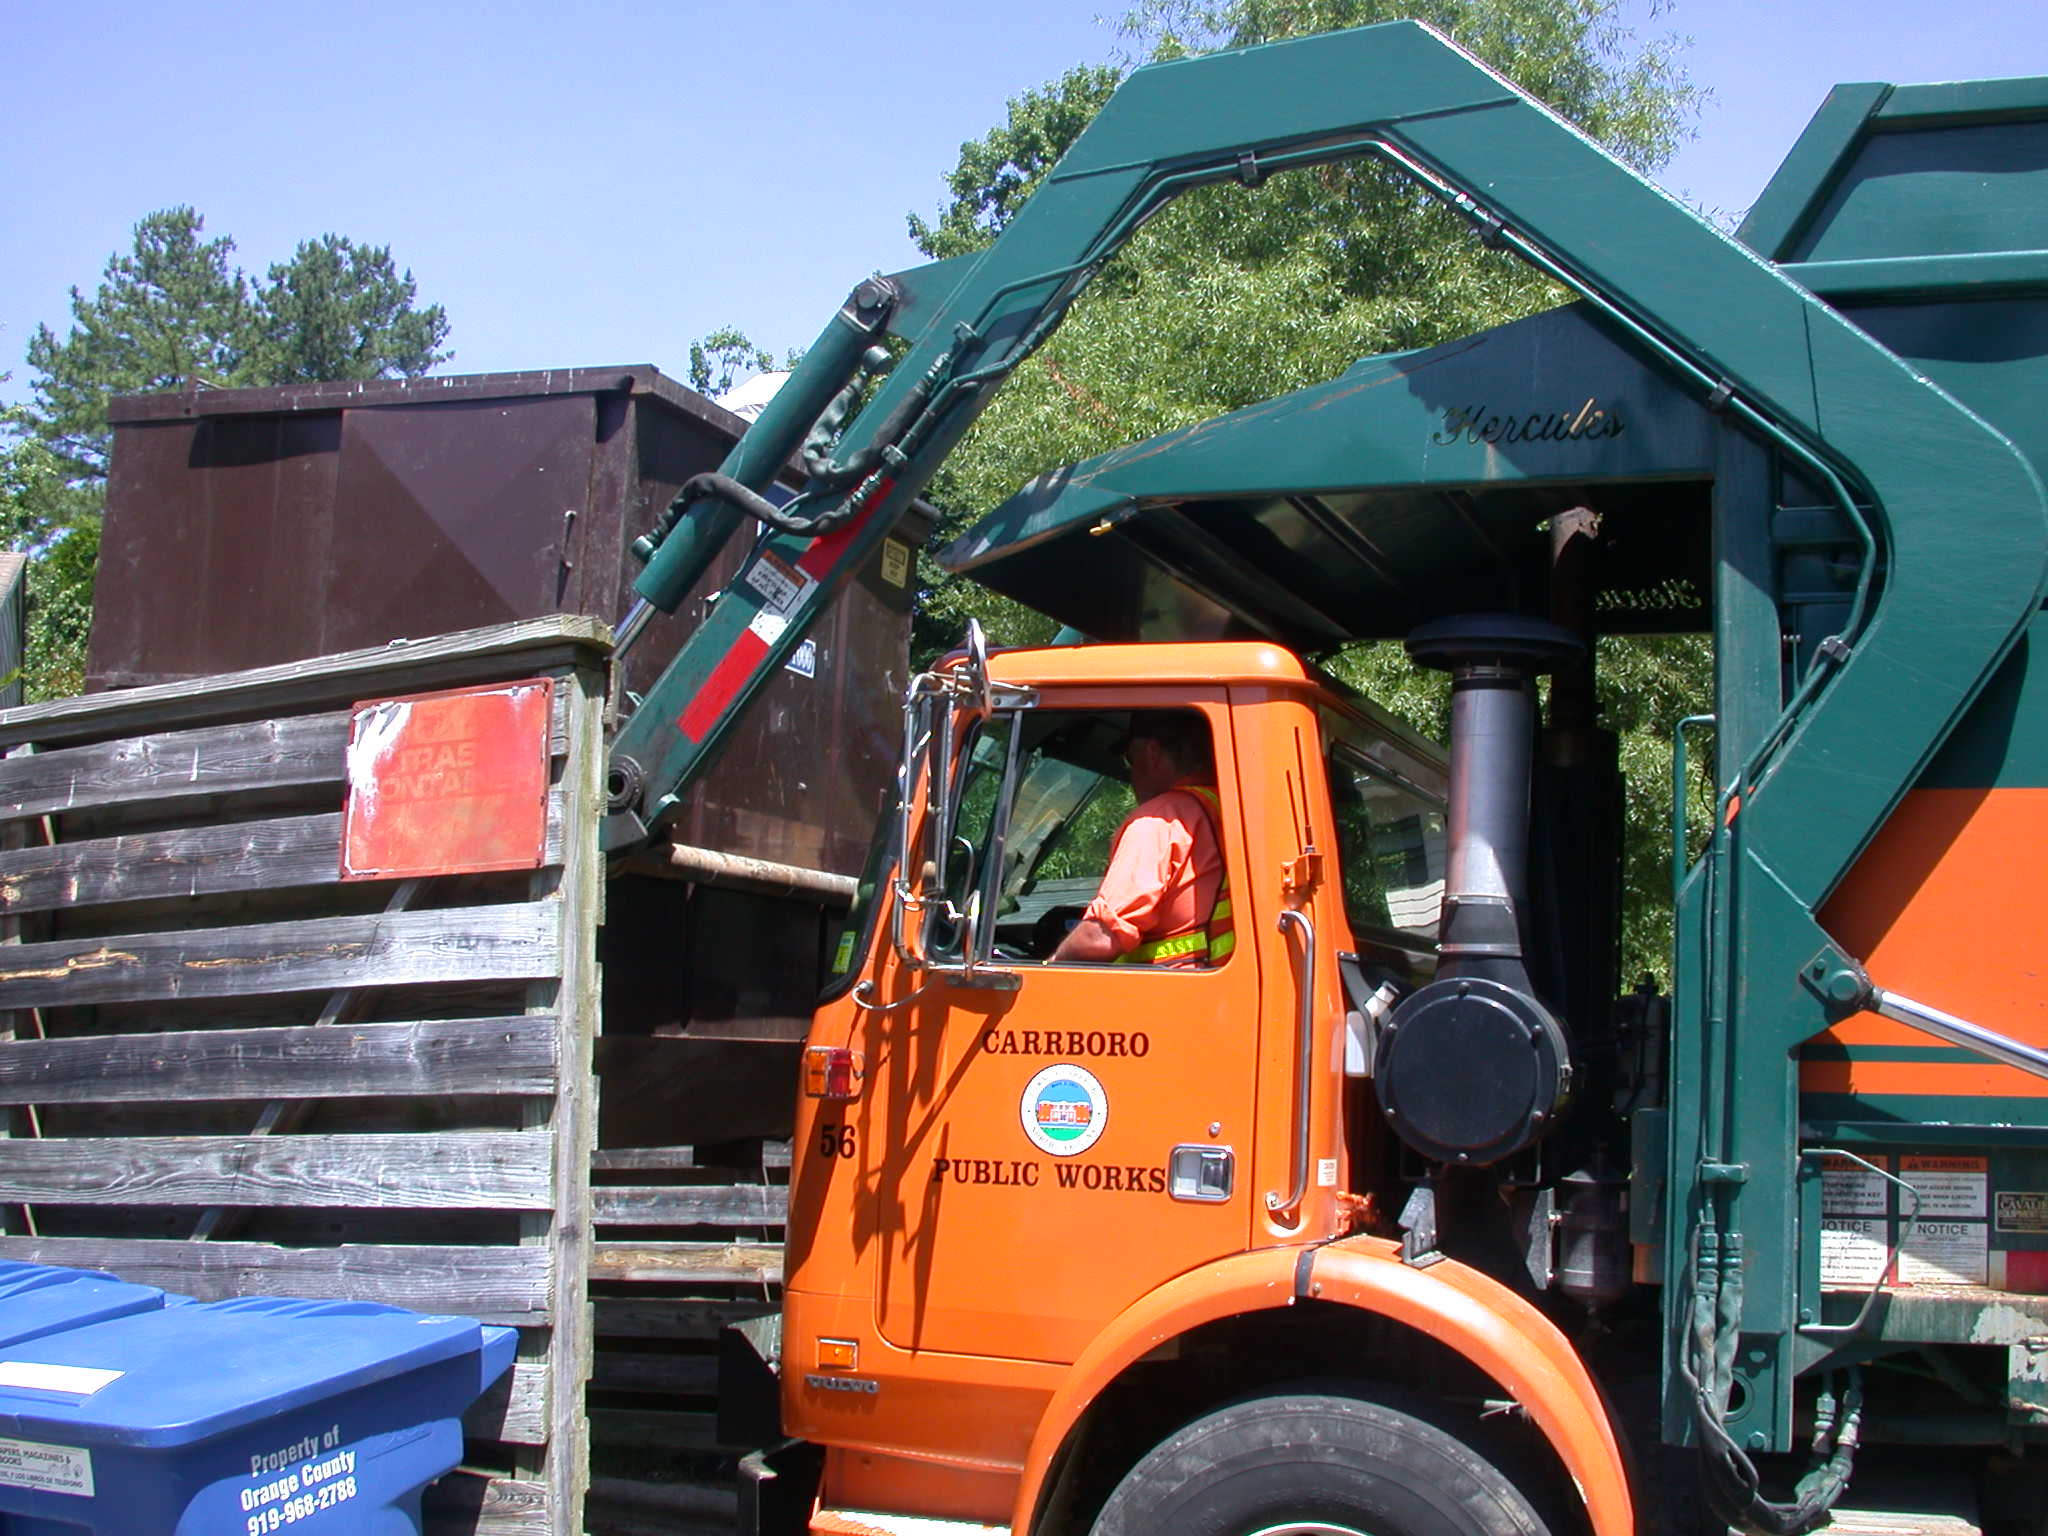 Commercial Waste Collection